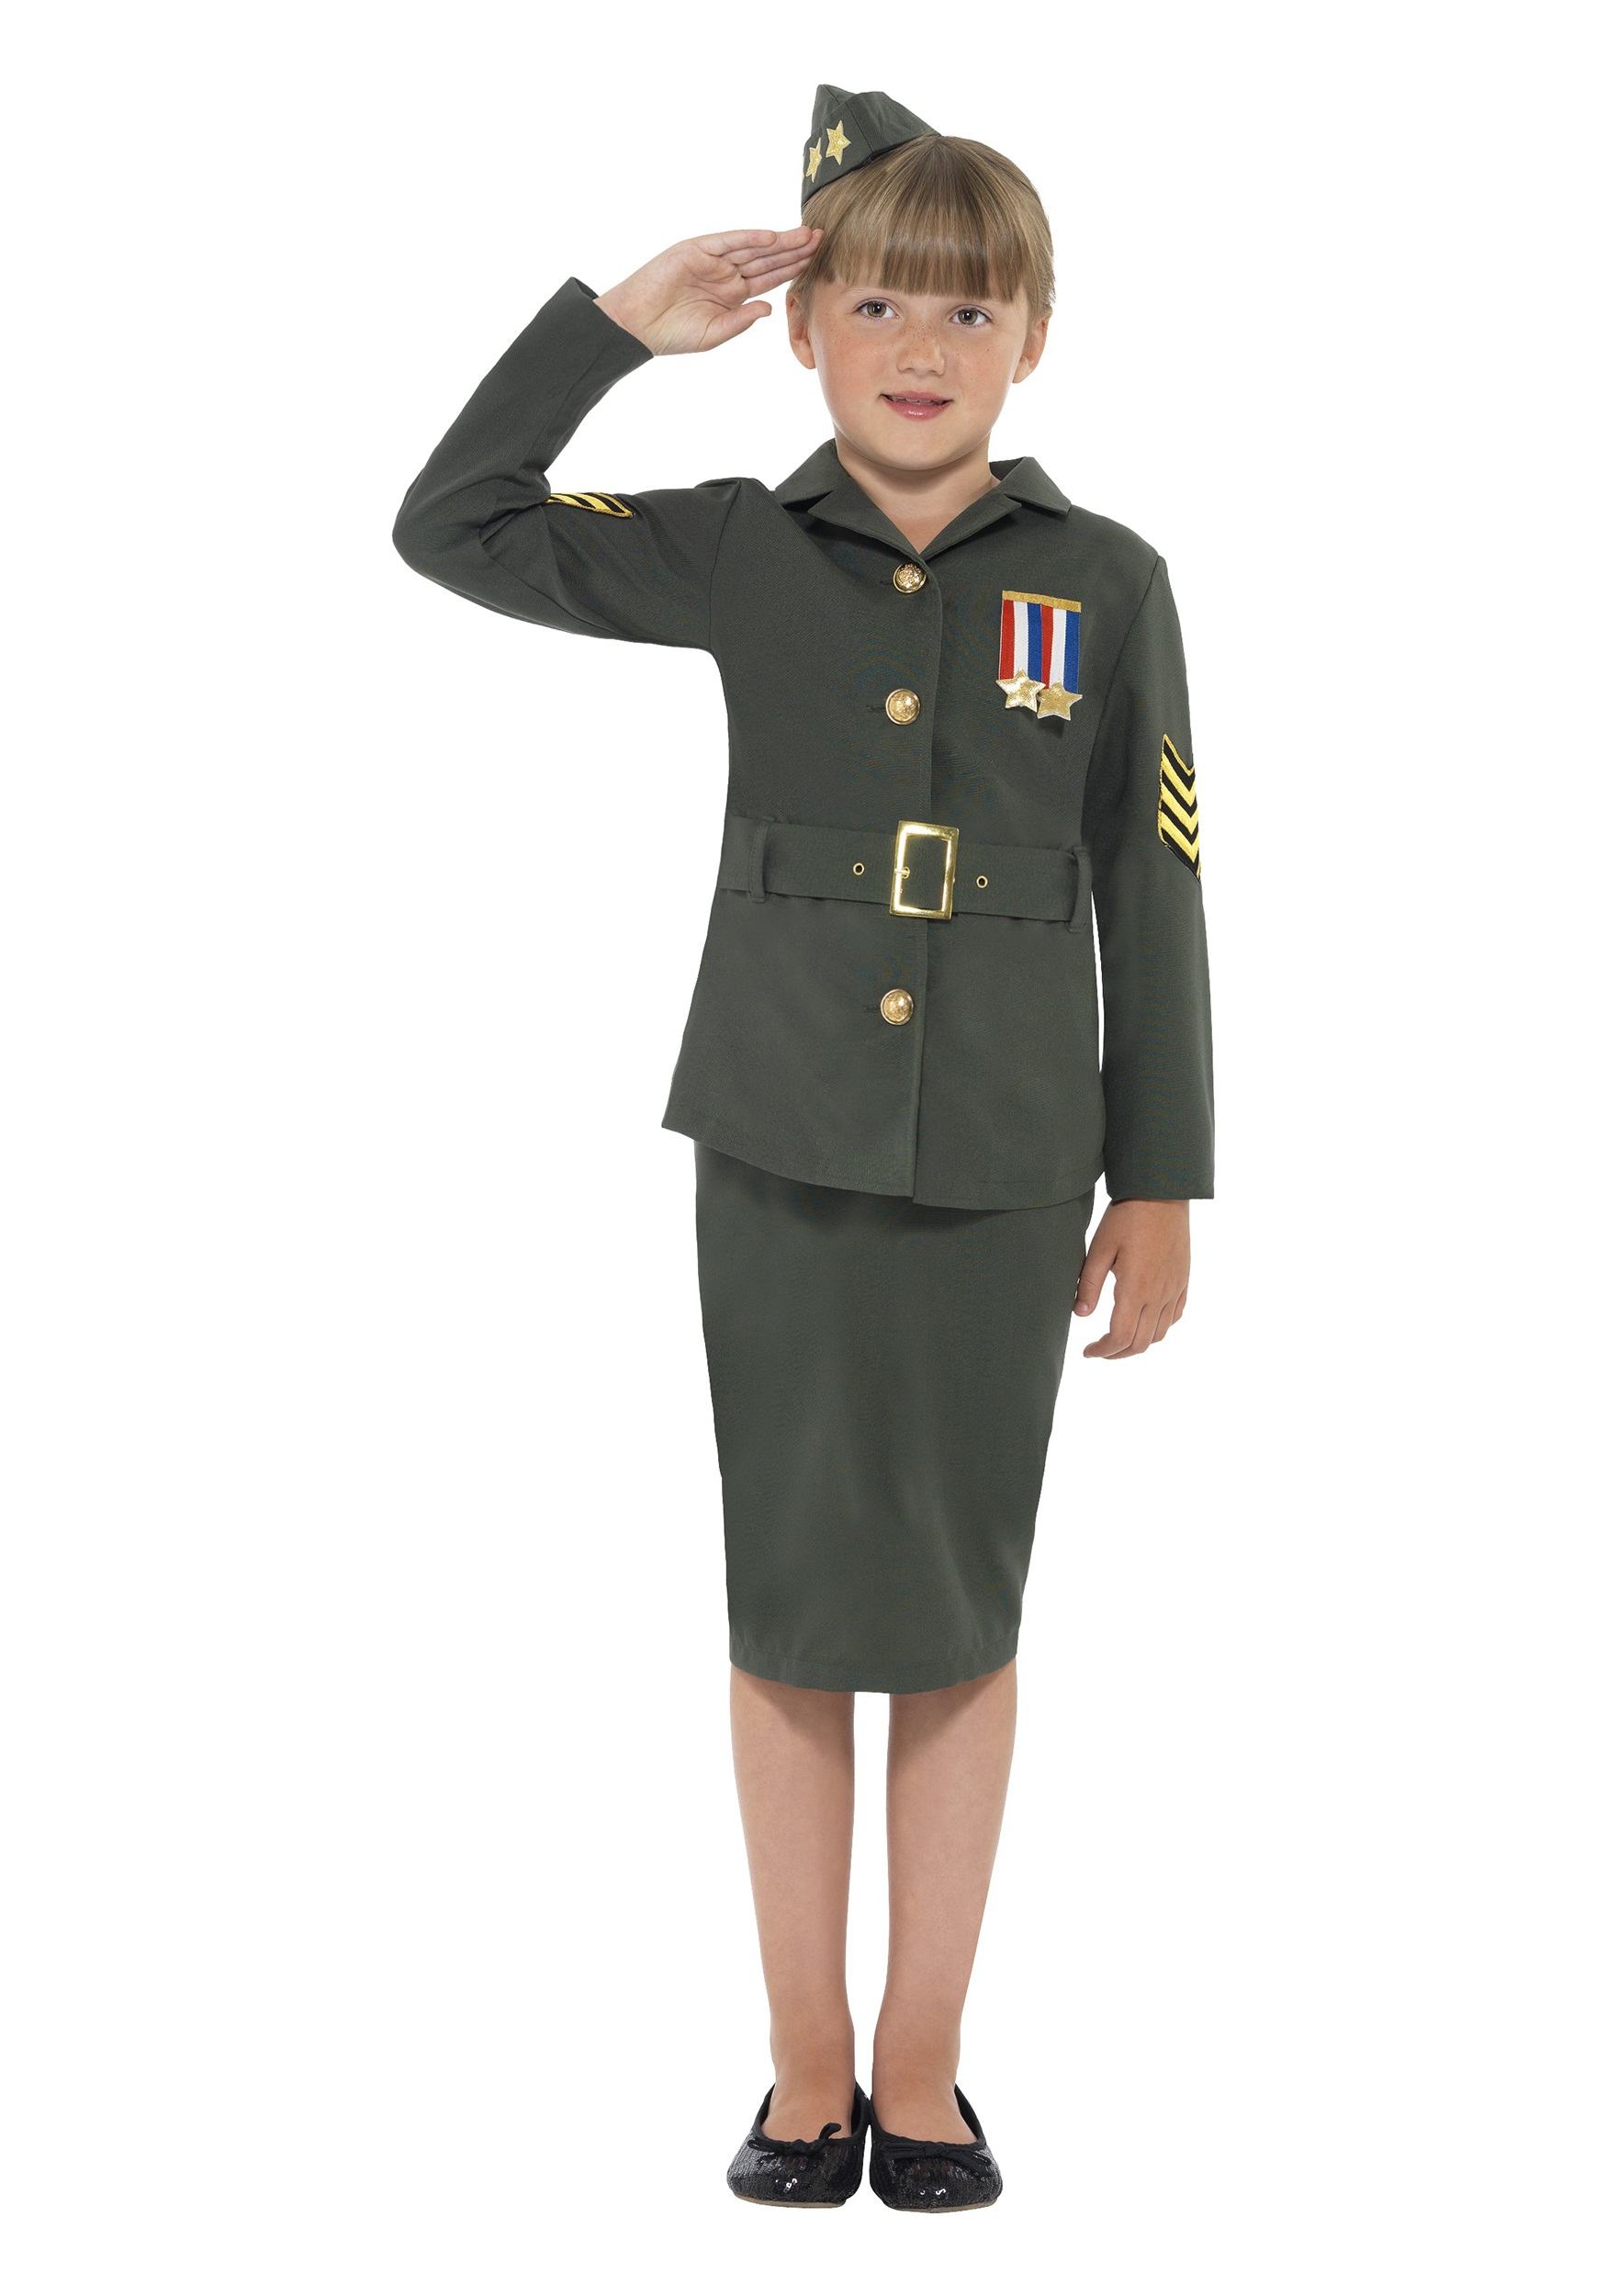 Girls WW2 Army Costume  sc 1 st  Halloween Costumes & Girls WW2 Army Costume - Halloween Costumes